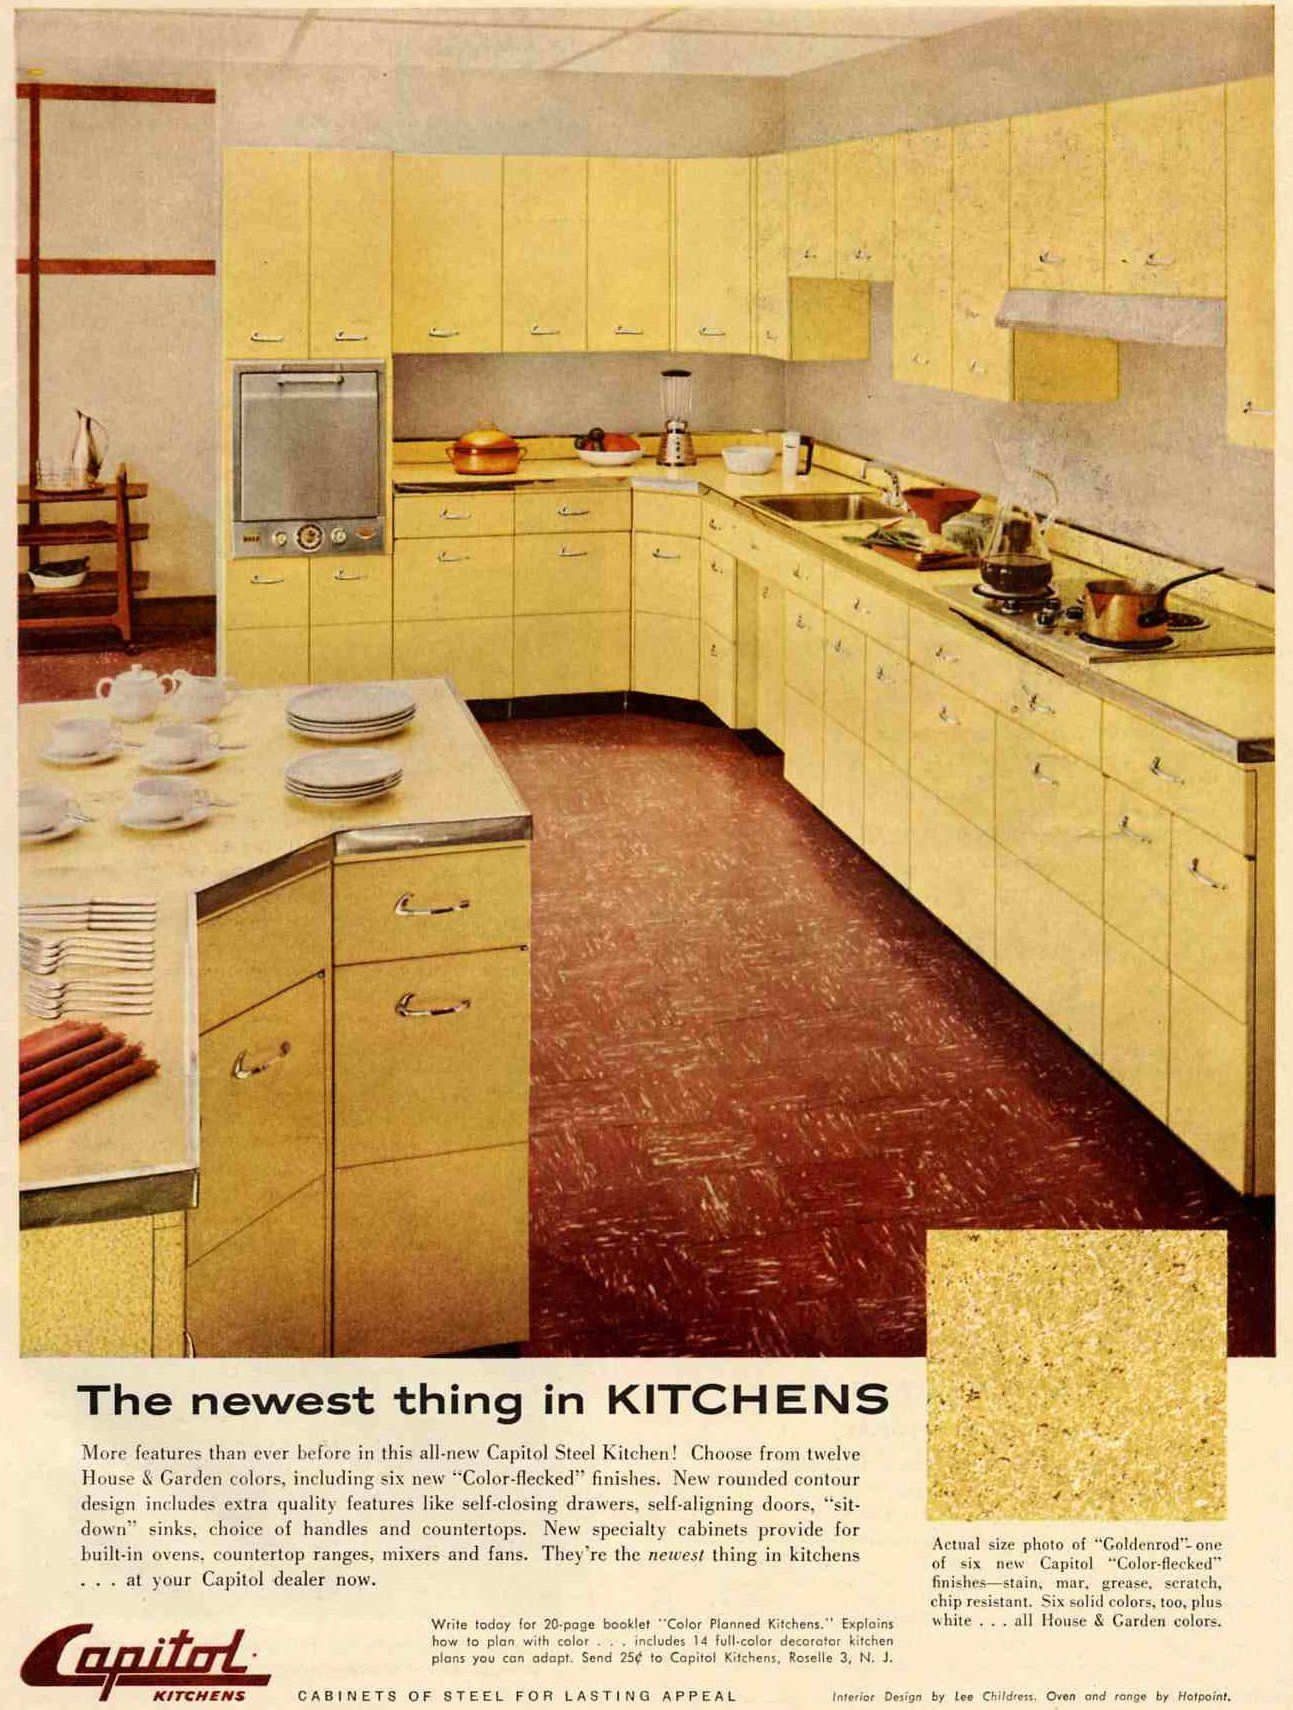 Steel Kitchen Cabinets History Design And Faq Steel Kitchen Cabinets Retro Kitchen Kitchen Cabinets